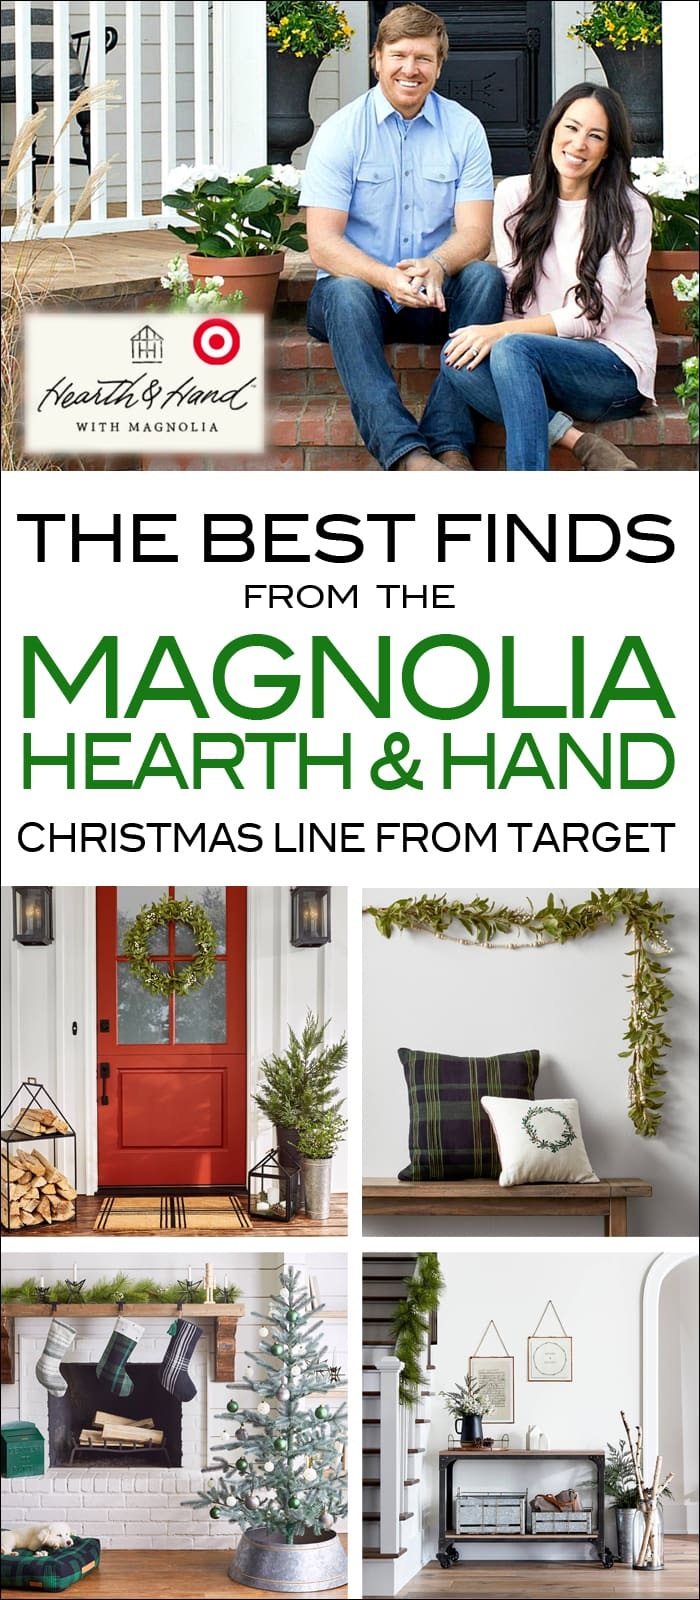 The best finds from the magnolia Hearth & Hand poster.